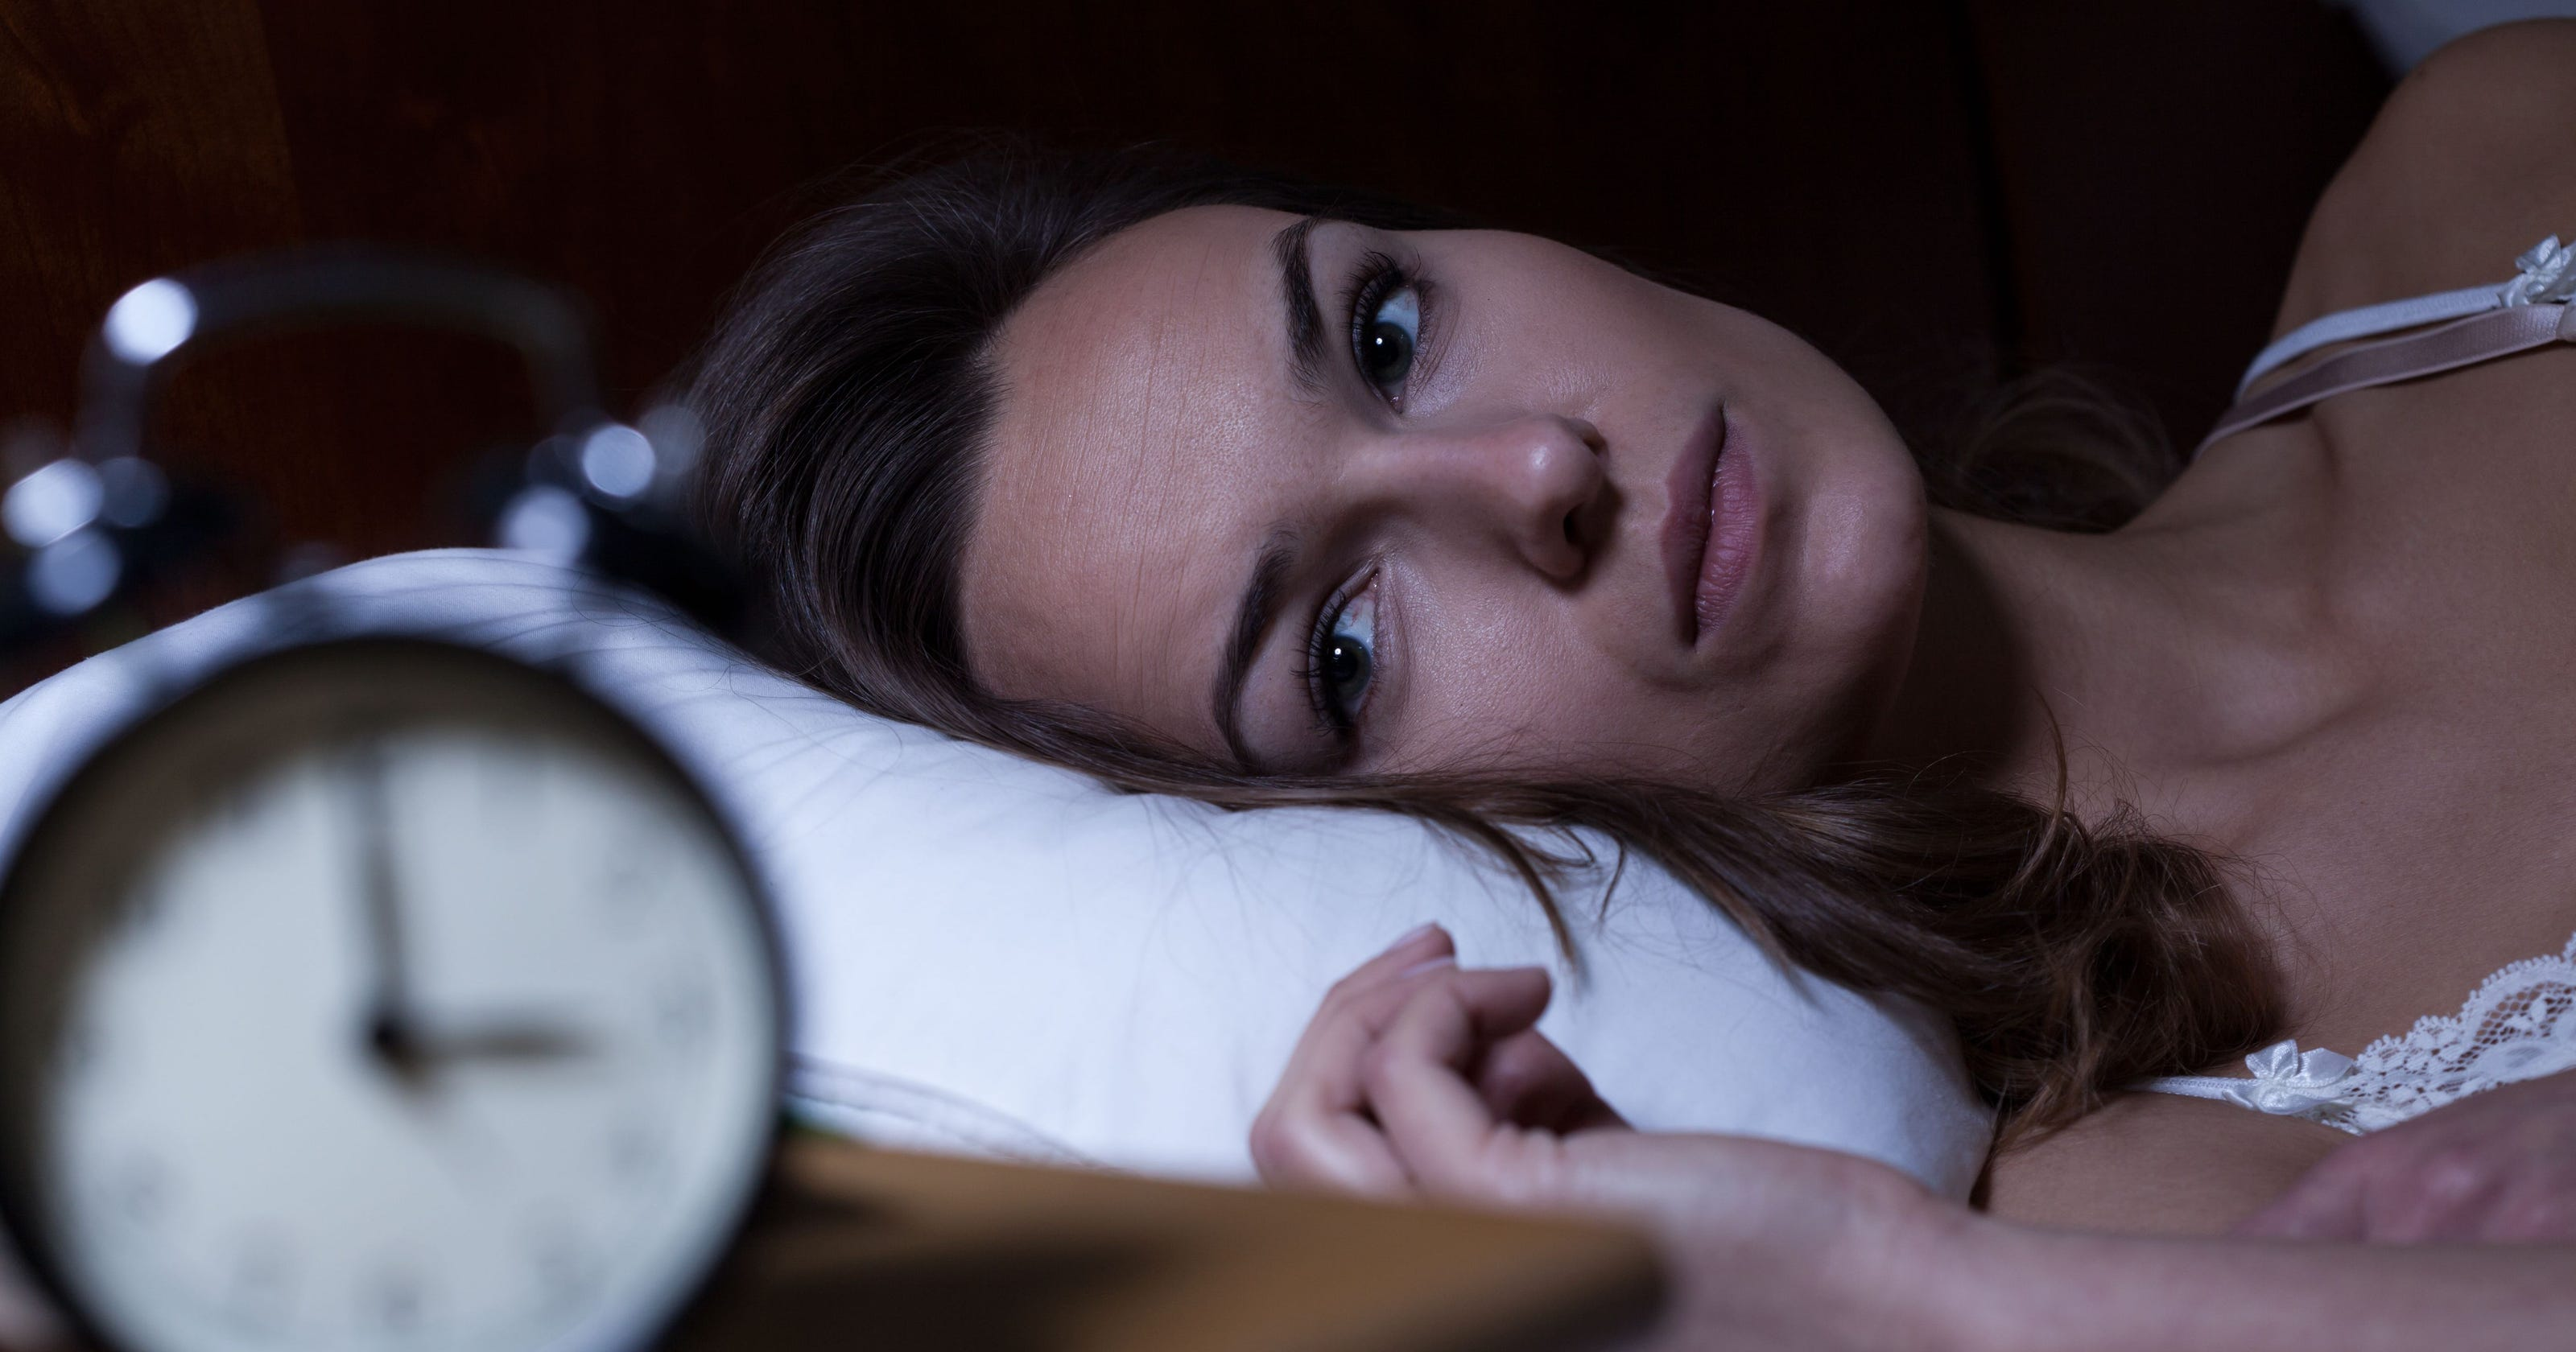 Best Steps To Do When You're Experiencing Ensomnia